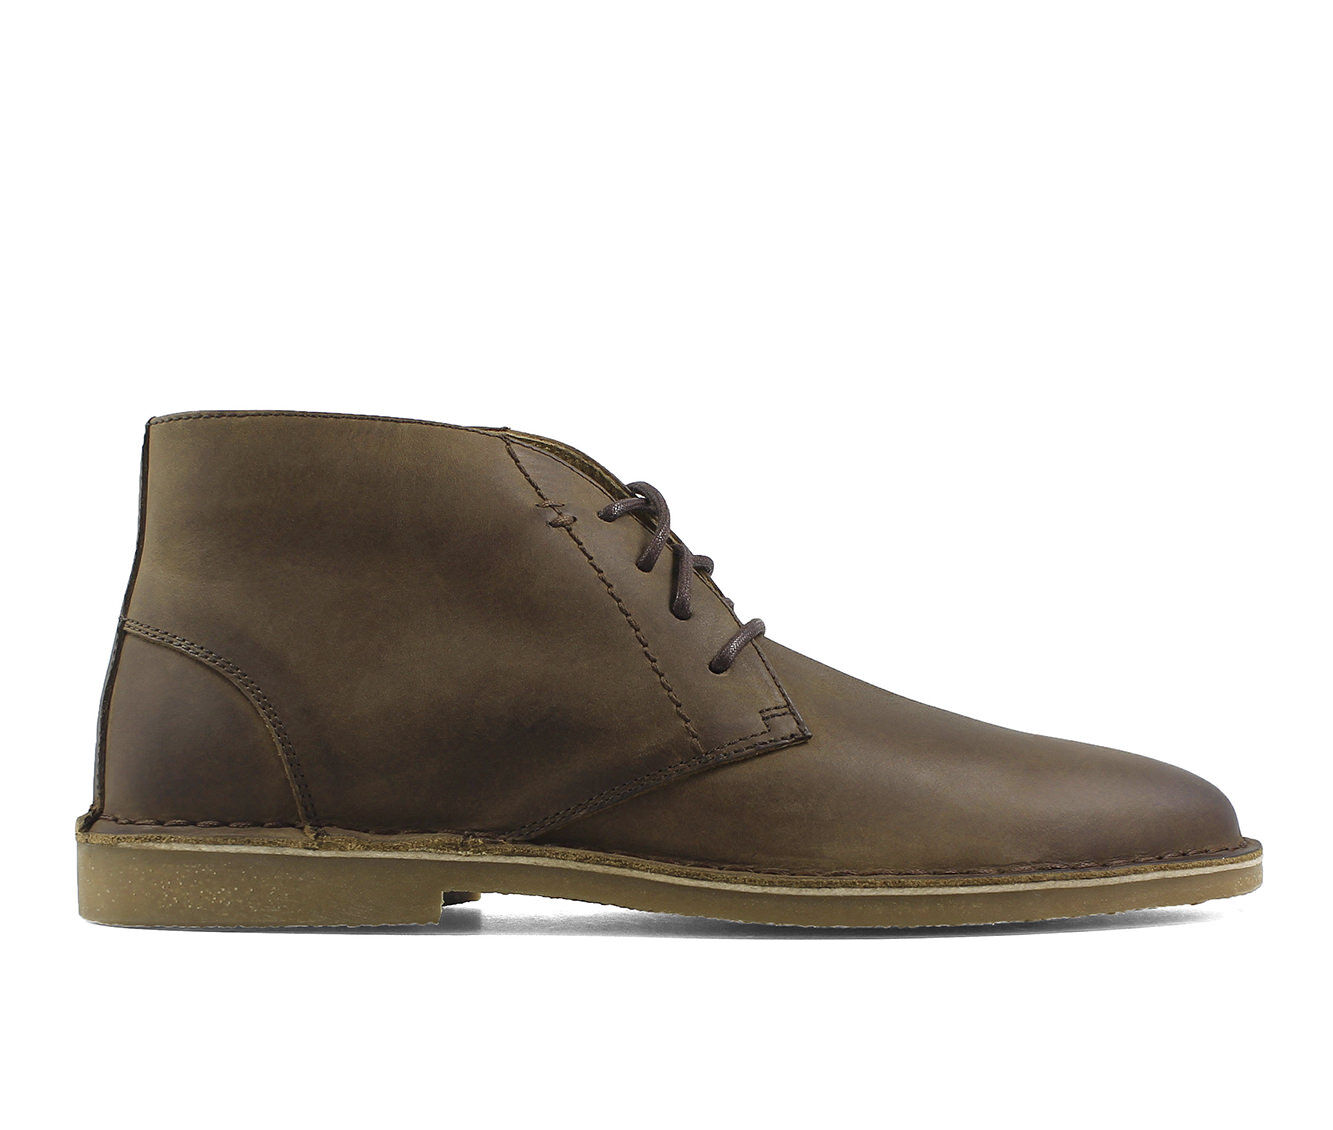 Buy Cheap Men's Nunn Bush Galloway Plain Toe Chukka Boots Tan